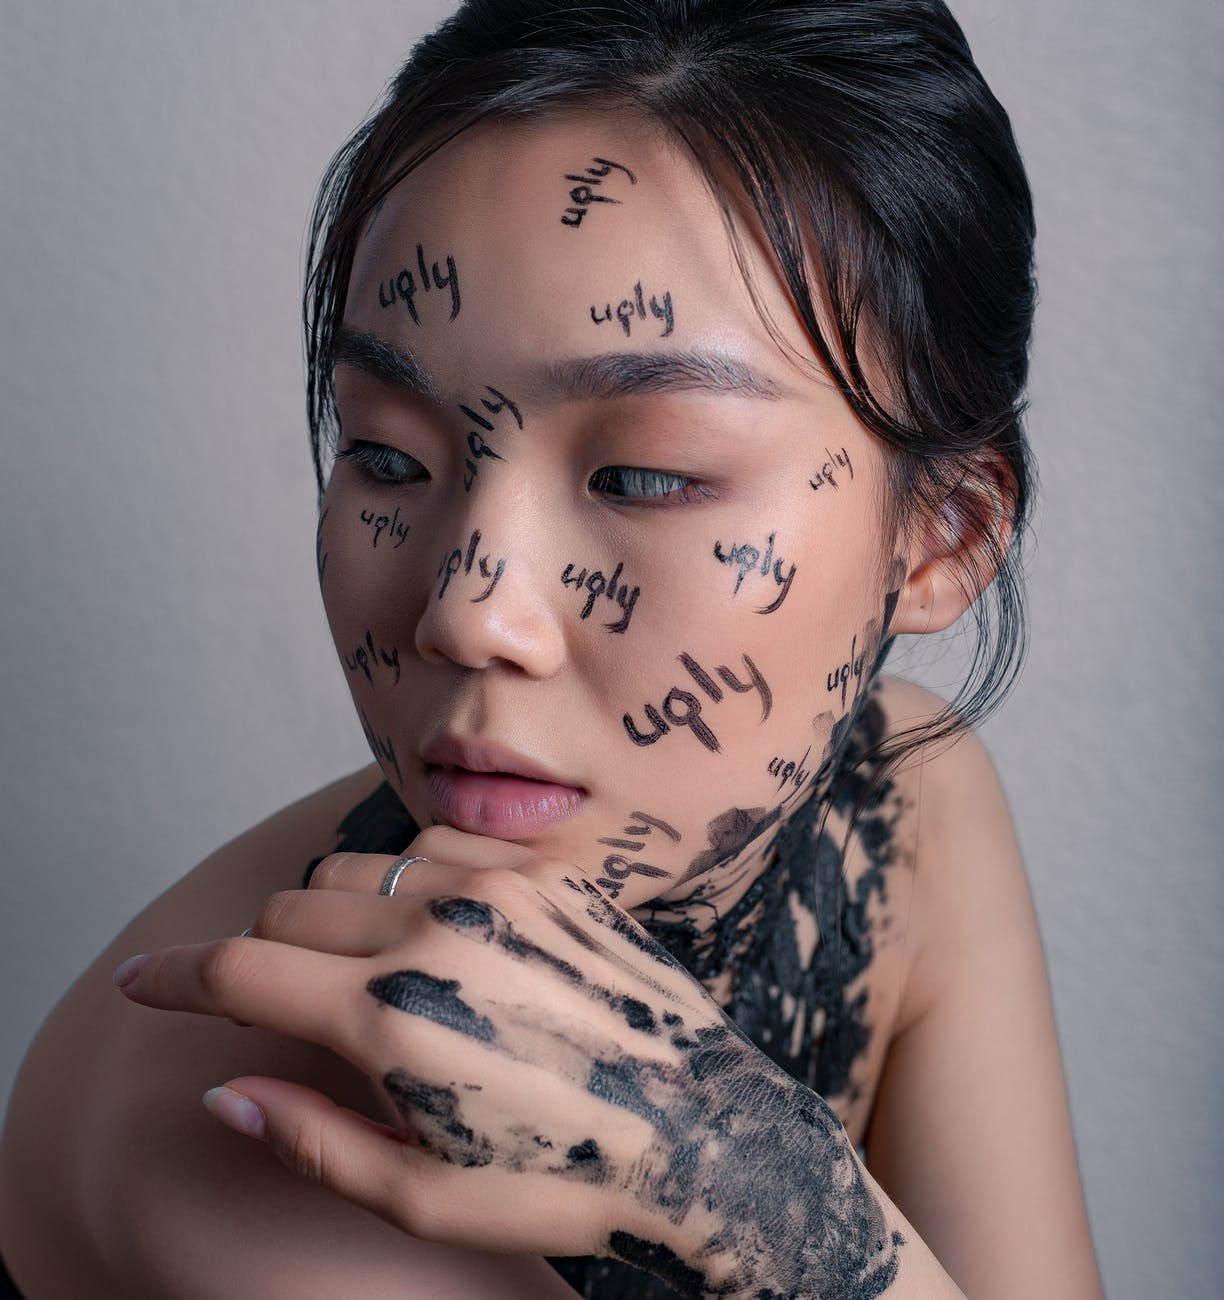 crop asian woman with words ugly written on face